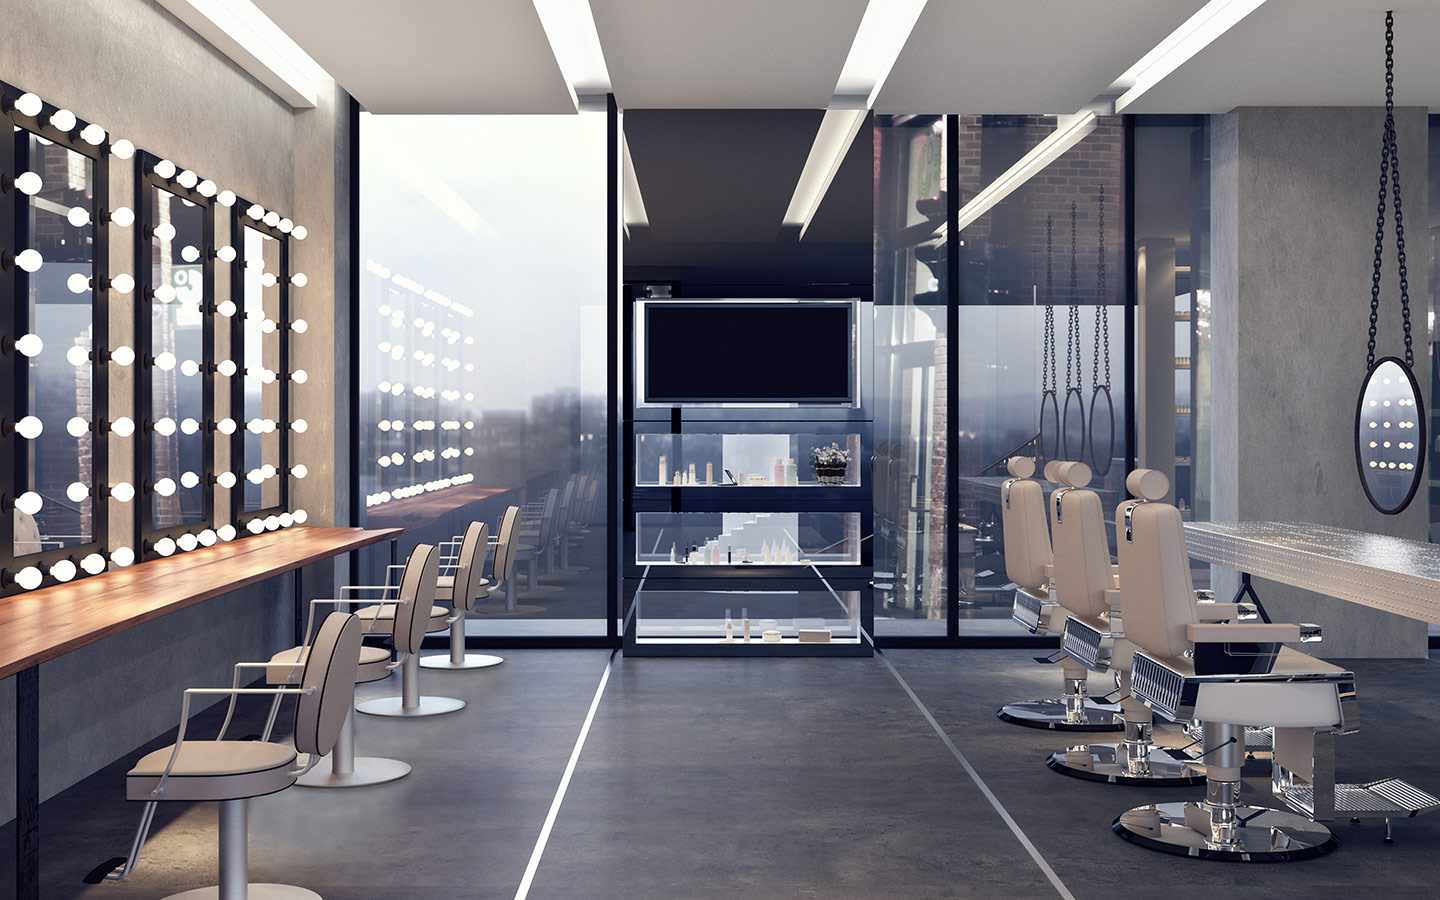 An interior view of one of the salons in Dubai